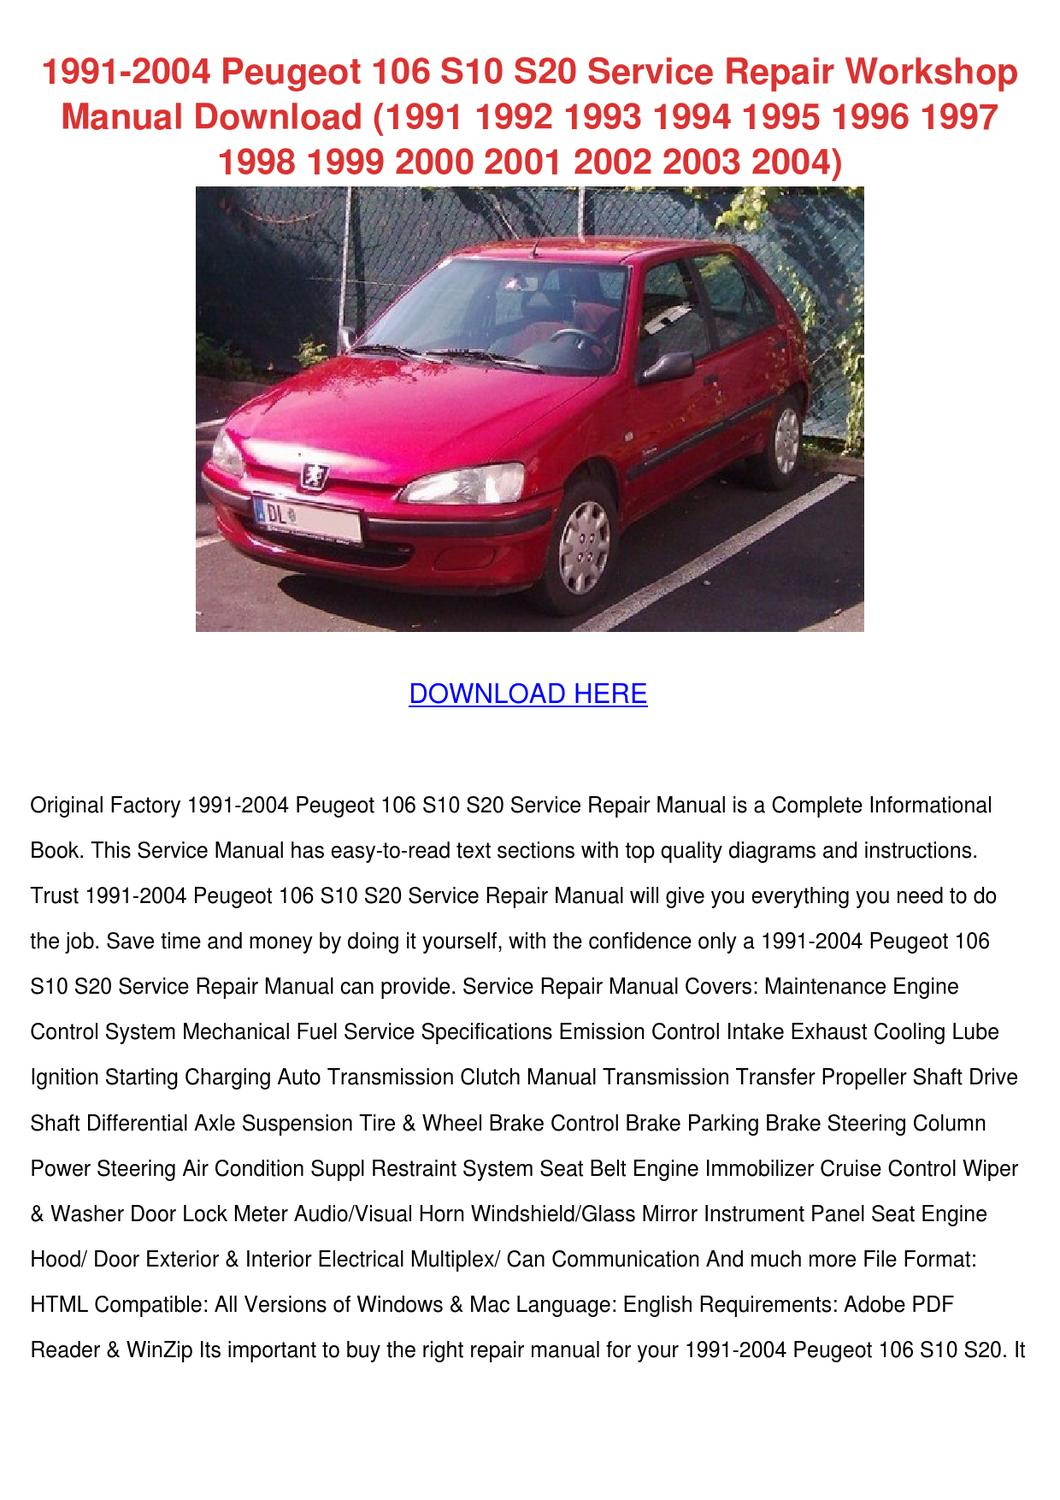 1991 2004 Peugeot 106 S10 S20 Service Repair By Feliciadailey